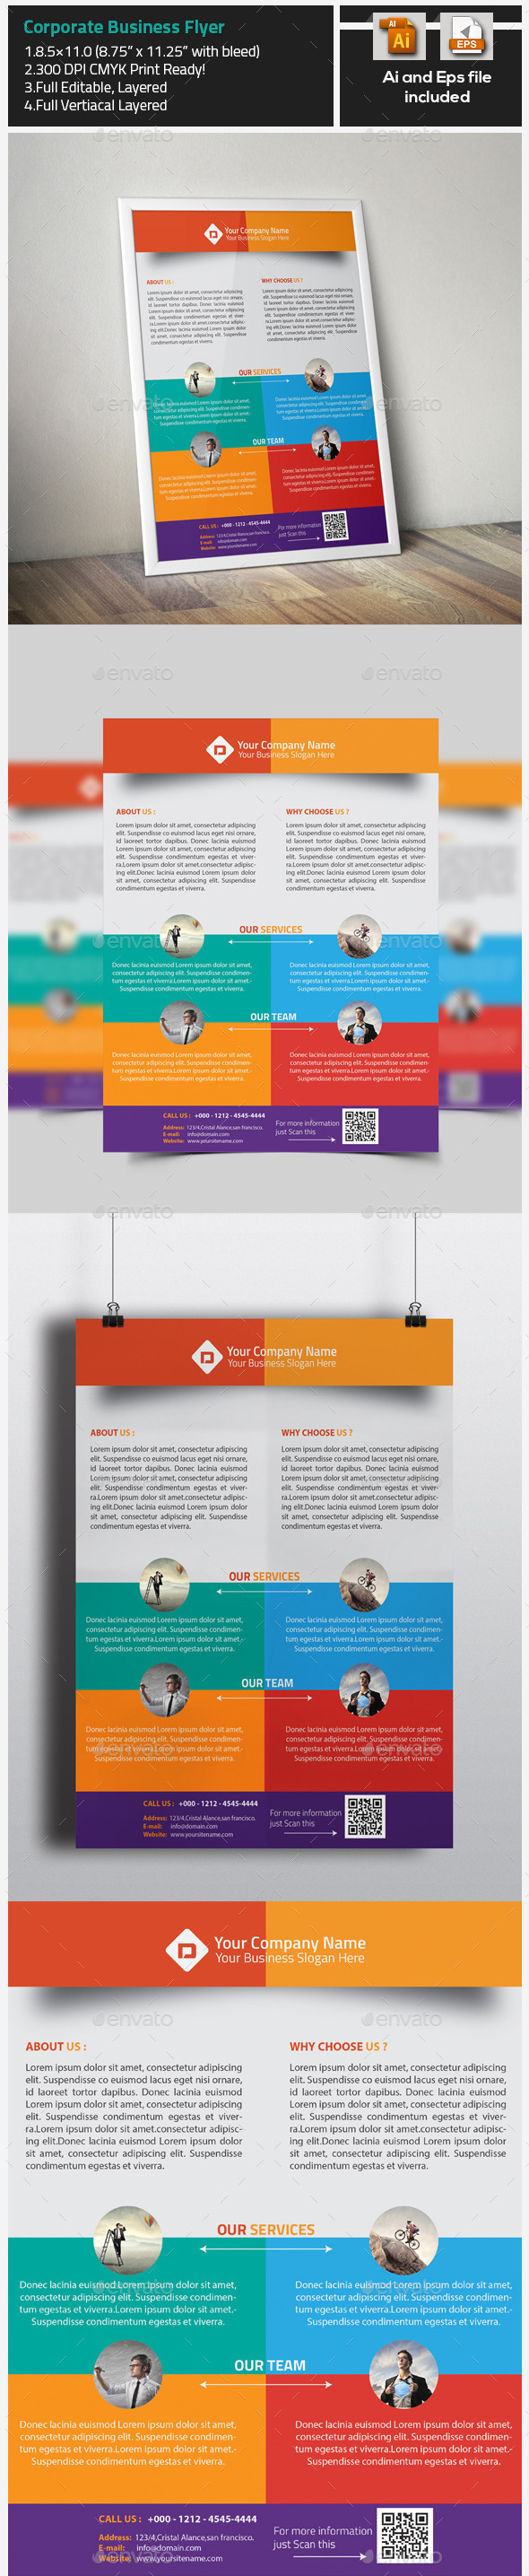 Corporate Creative Business Flyer - Corporate Flyers